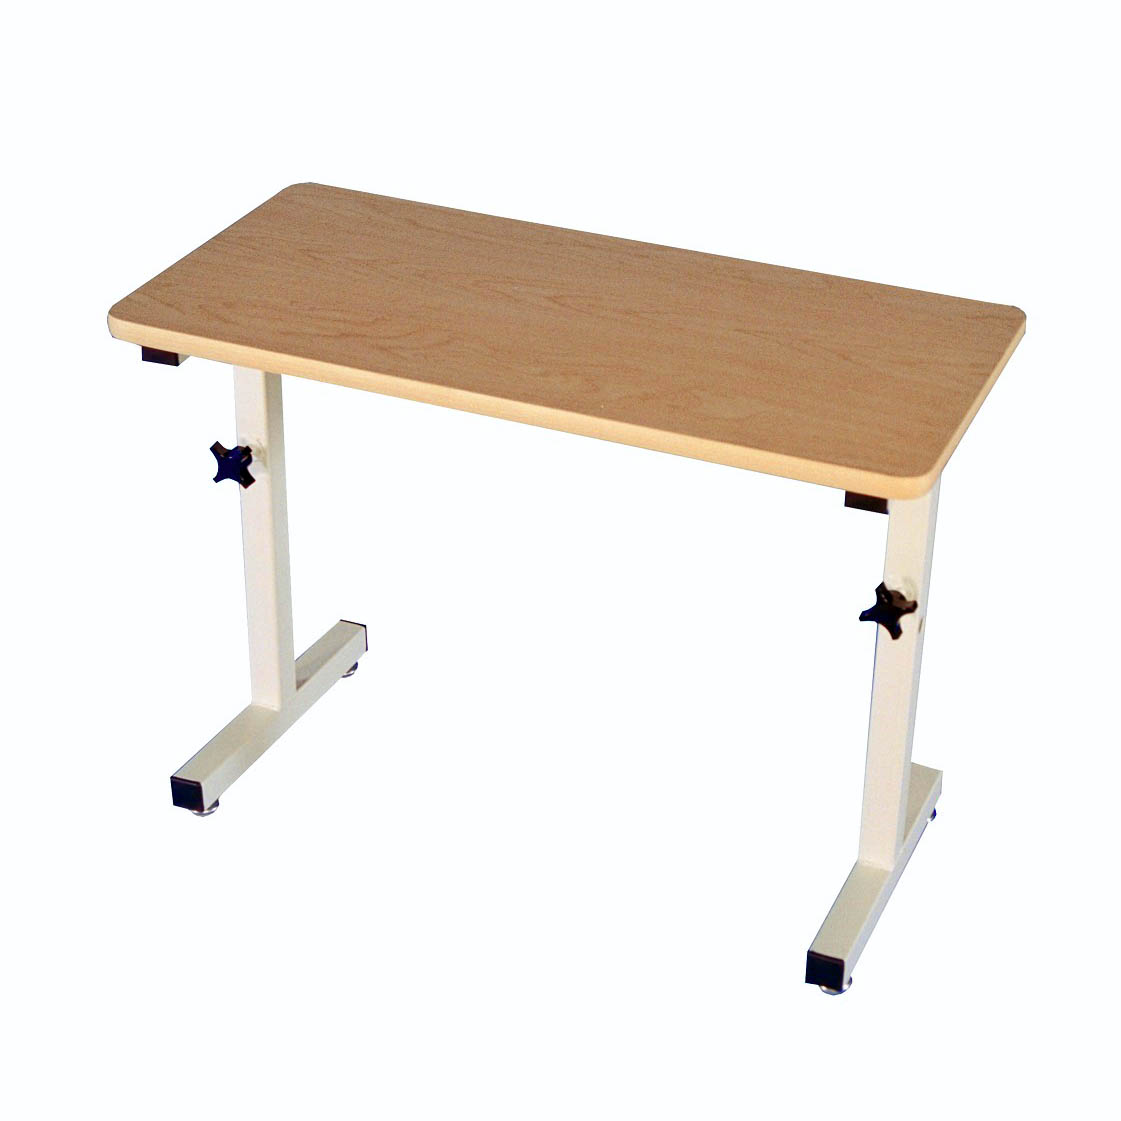 Armedica hand therapy table